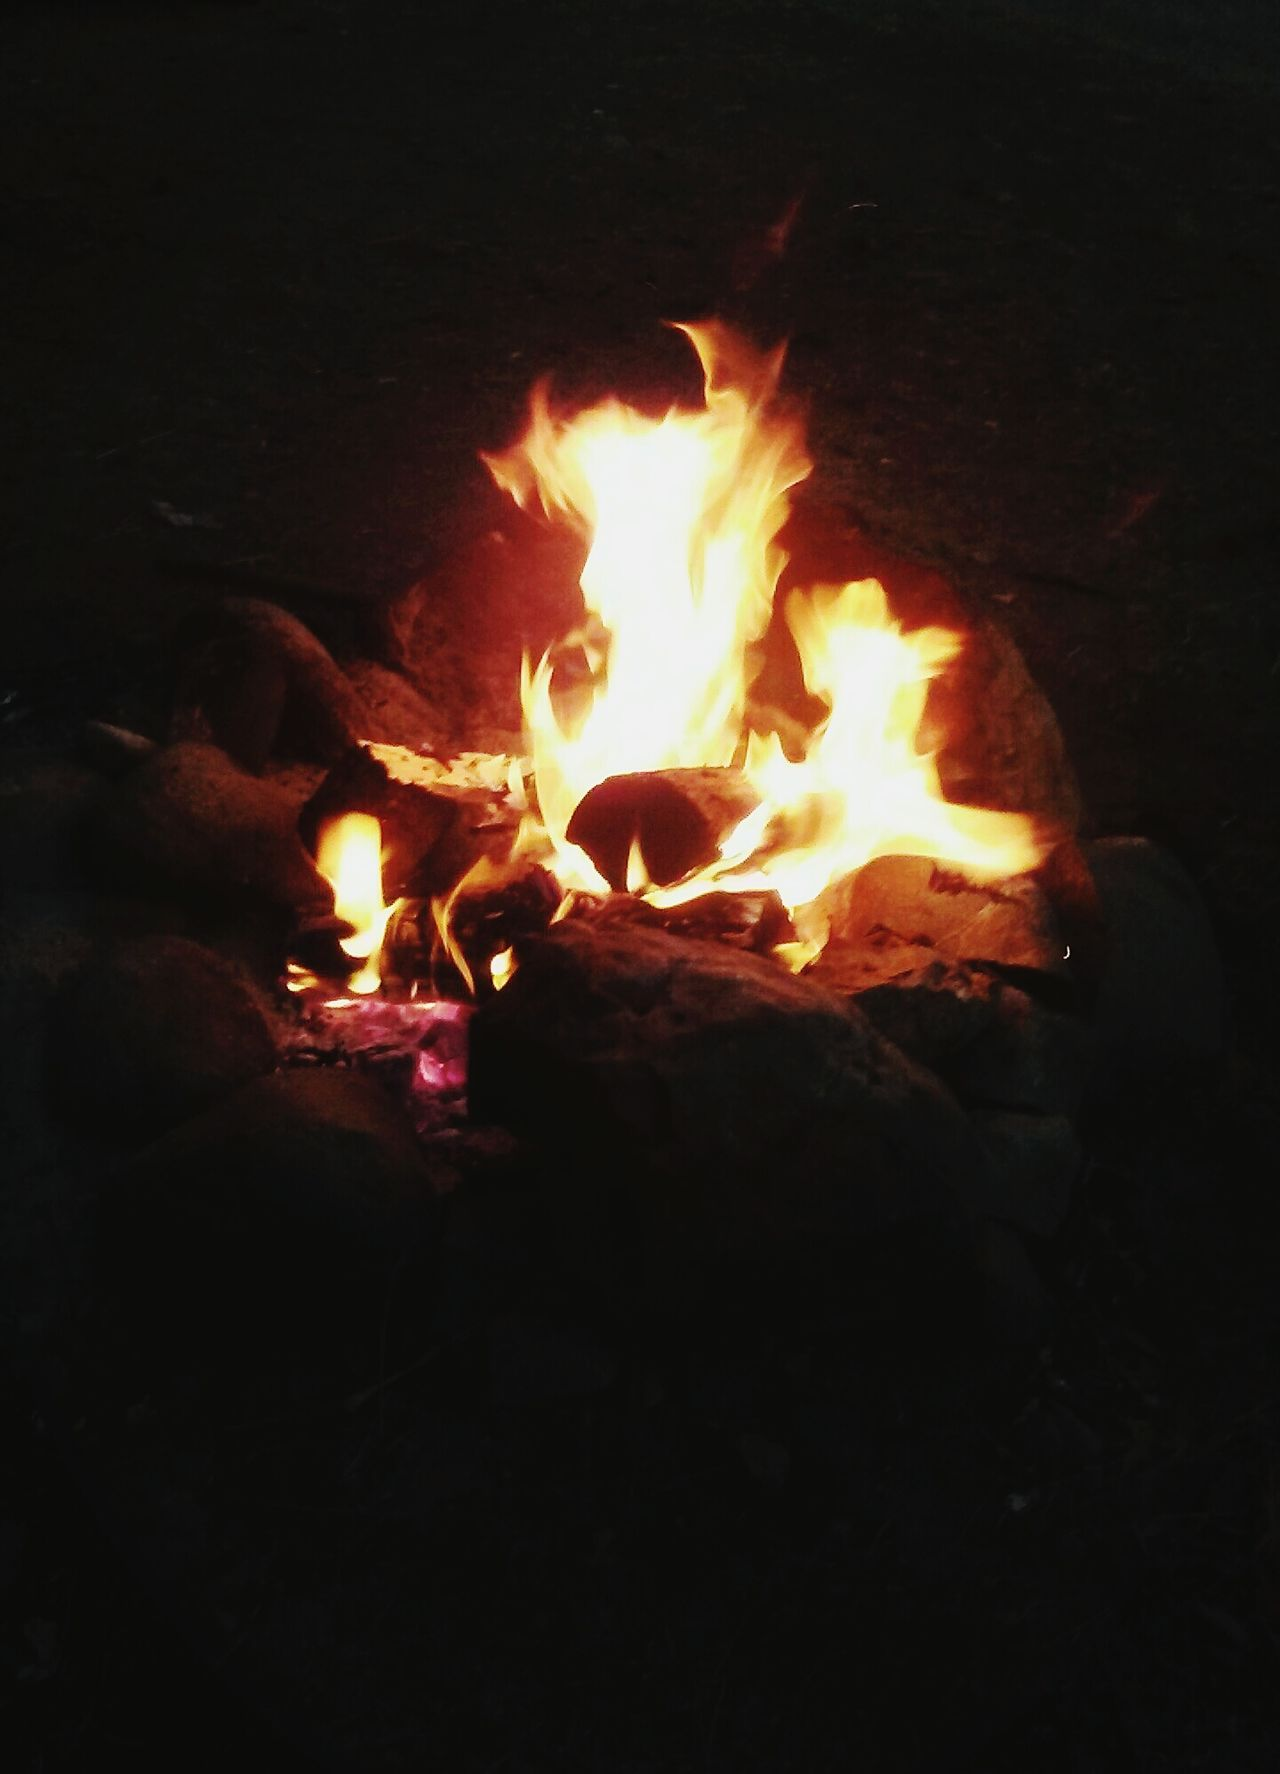 Fire Camping Firepit Feel The Burn Burning Love Bonfire Burn Baby Burn Flaming Fire And Flames